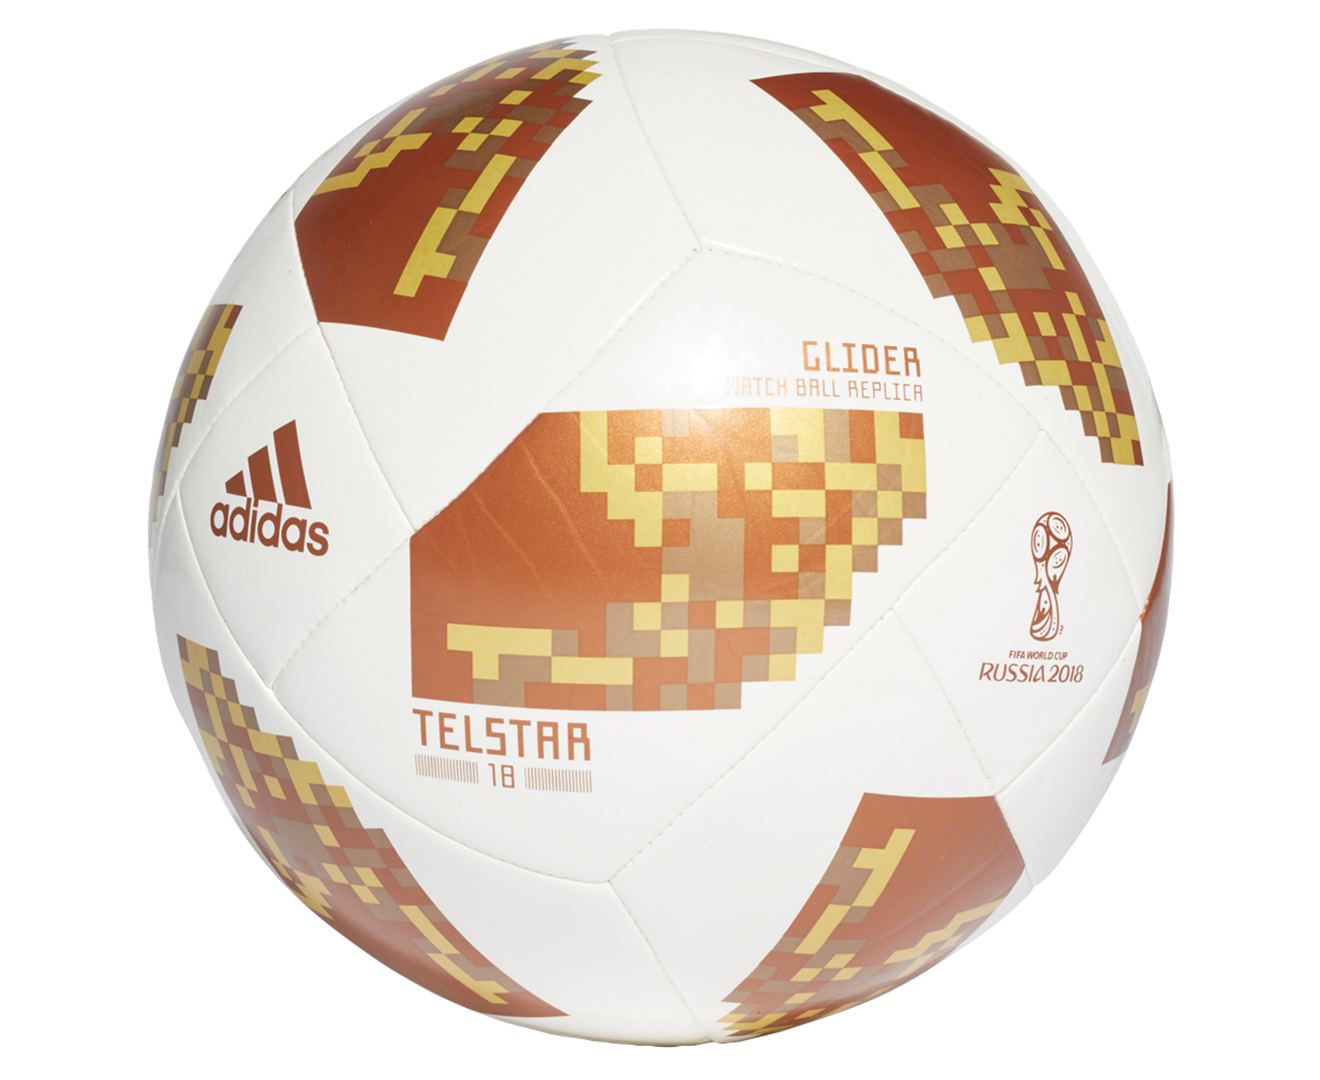 6afb3bf72 Adidas FIFA World Cup Top Glider Ball - White/Copper Gold/Gold Metallic